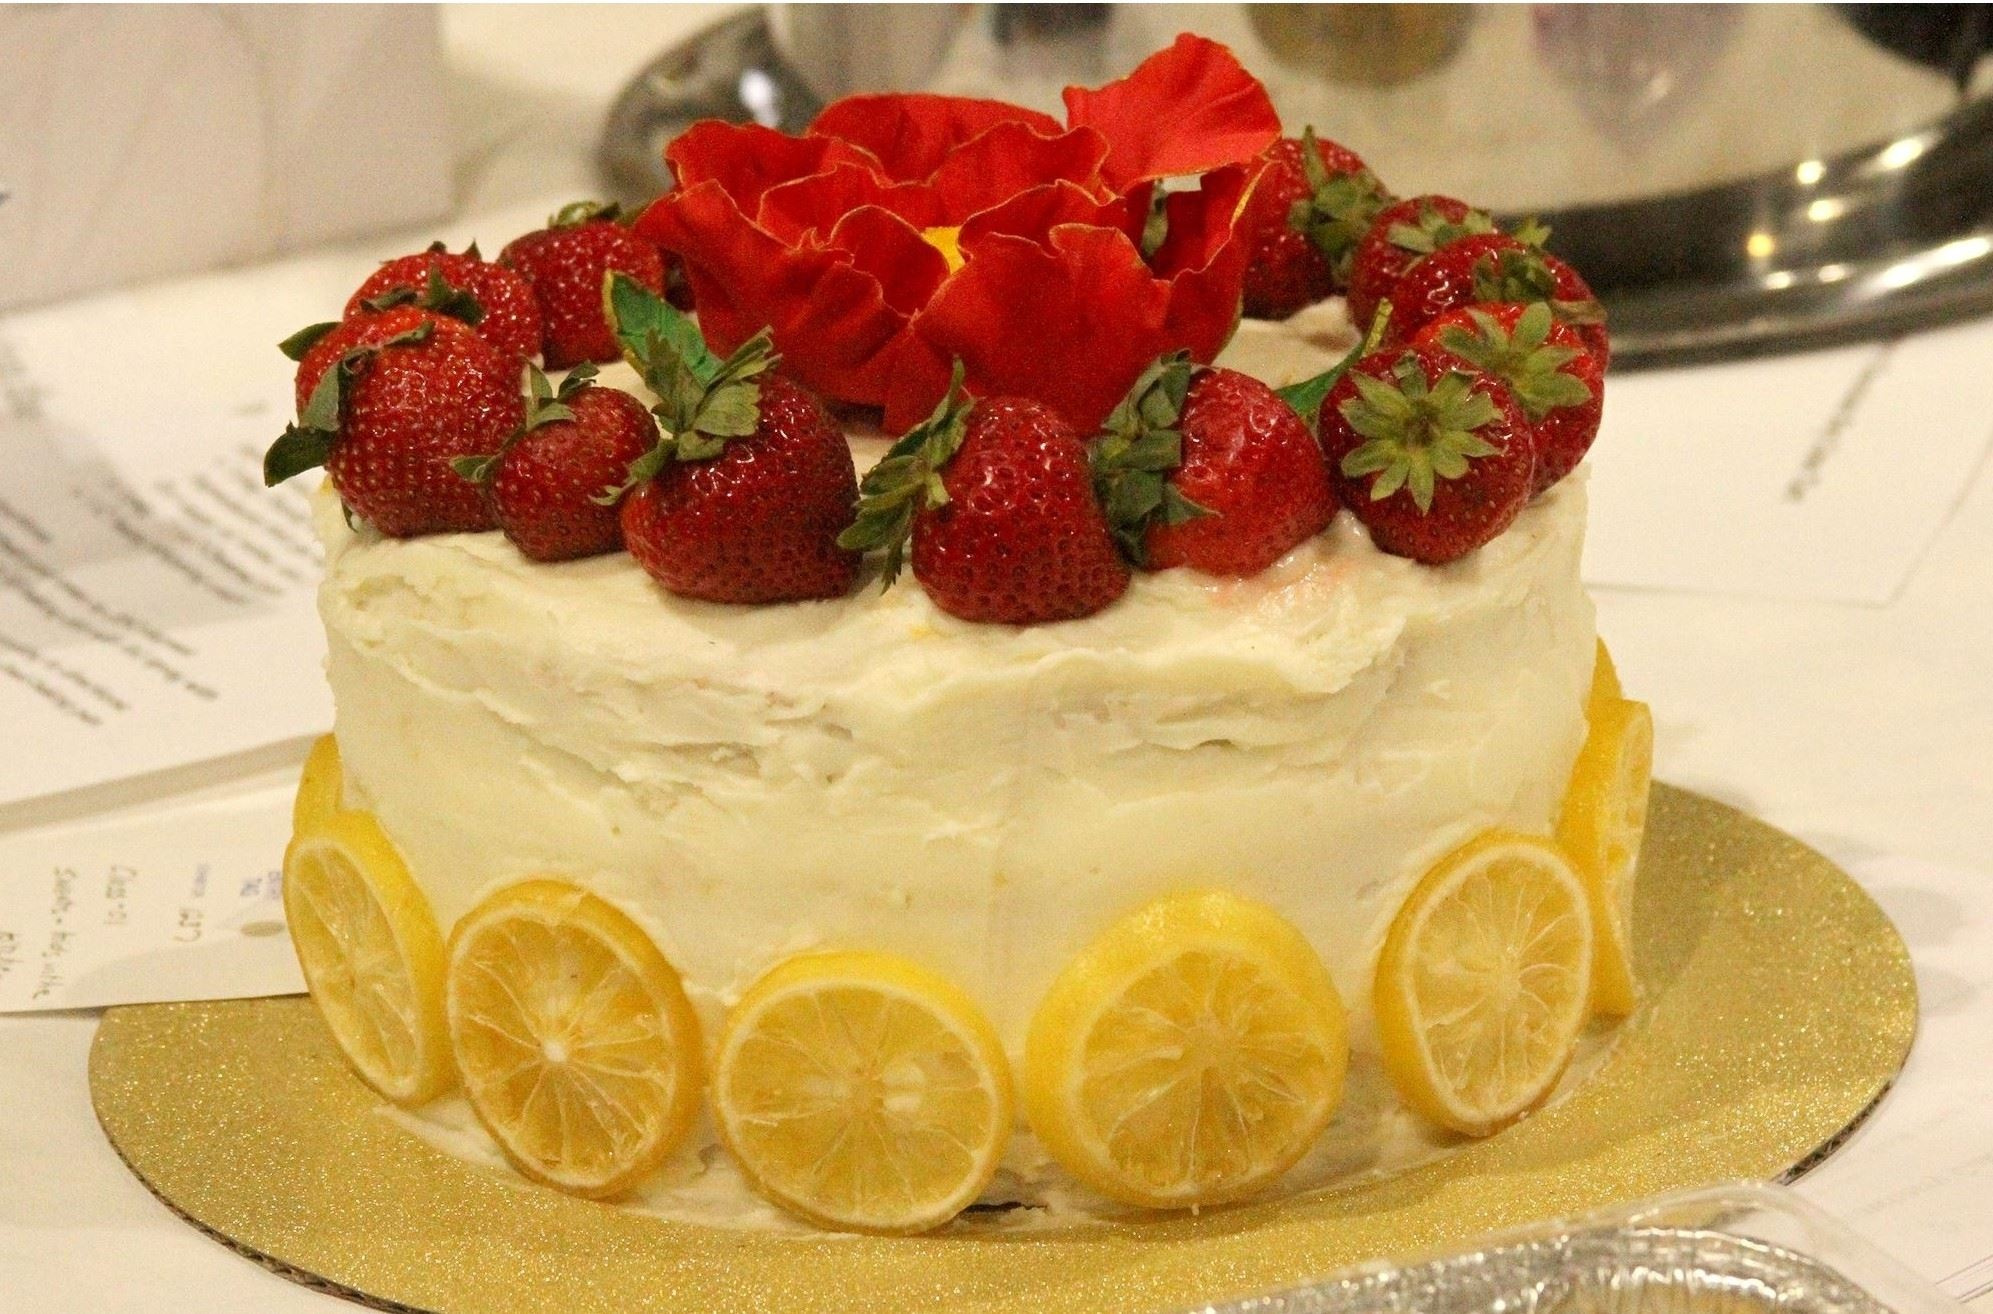 Cake with strawberries on top with link to enter Culinary Arts divisions.